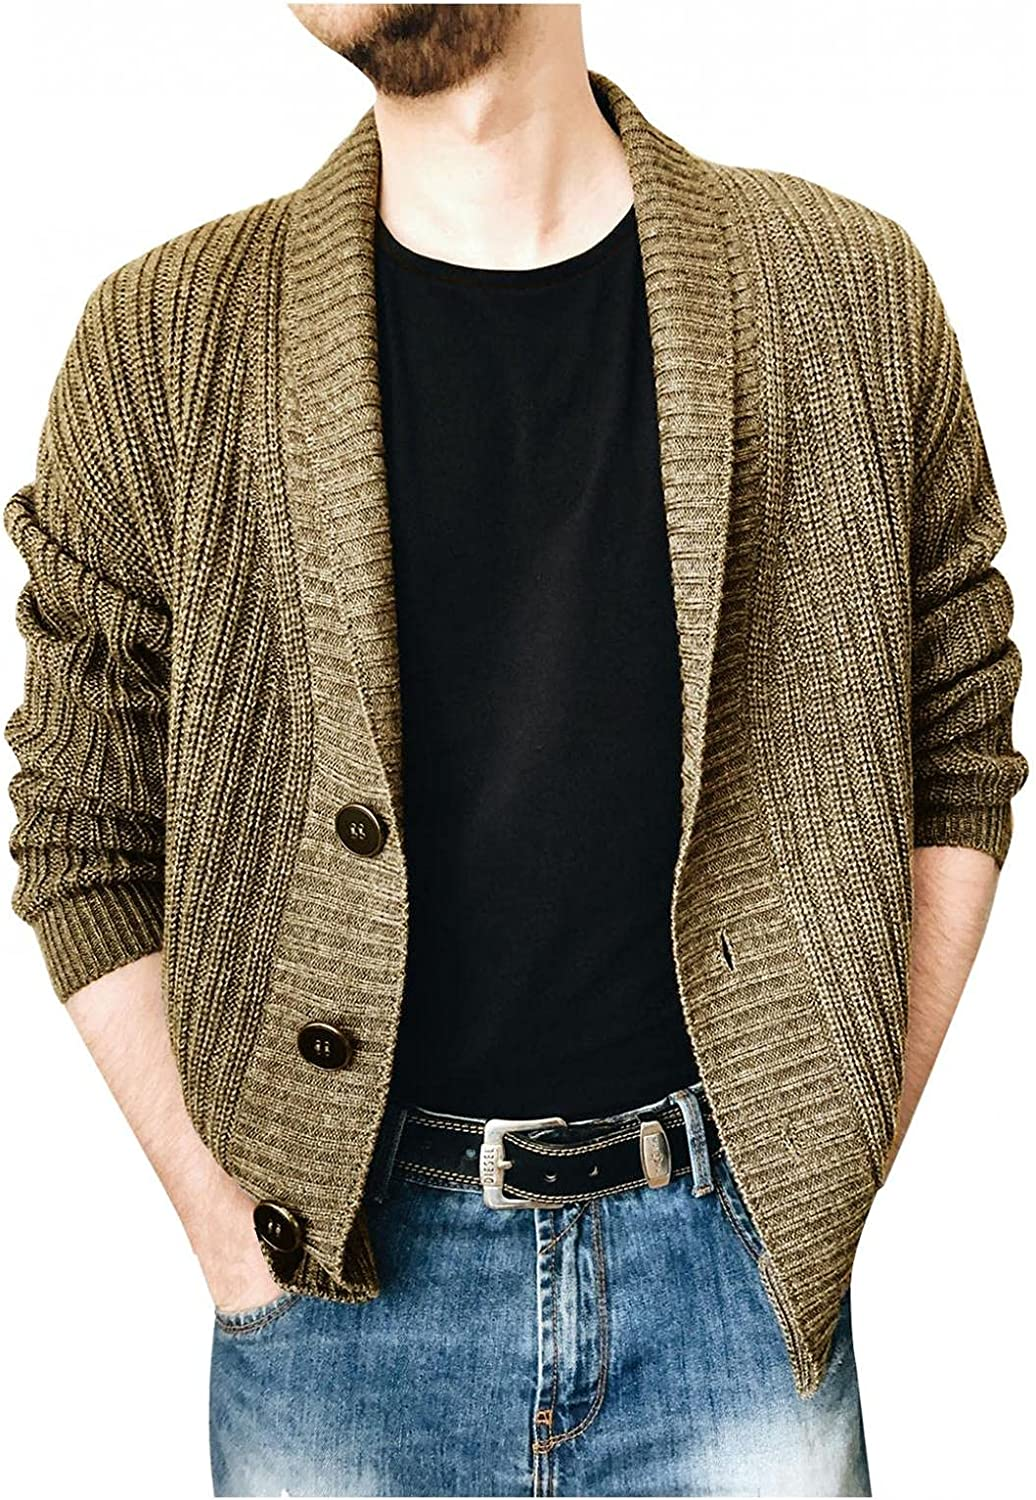 Mens Shawl Collar Cardigan Sweaters Long Sleeve Open Front Button Down Knitwear Blouse Casual Slim Fit Warm Coat Tops